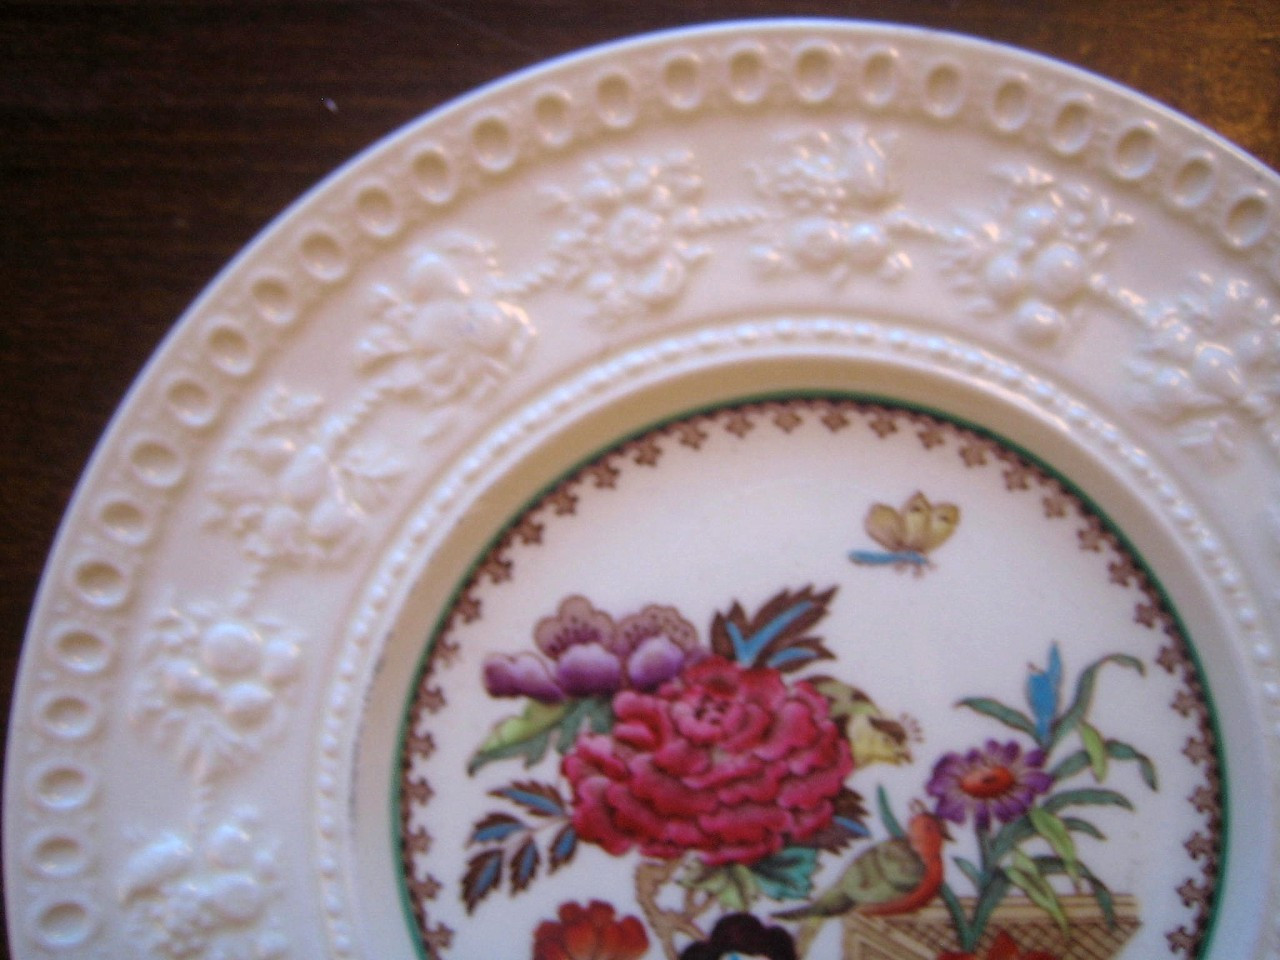 Chinoiserie Exotic Rose Birds Butterfly Textured Fruit Edge Plate Edge www.DecorativeDishes.net